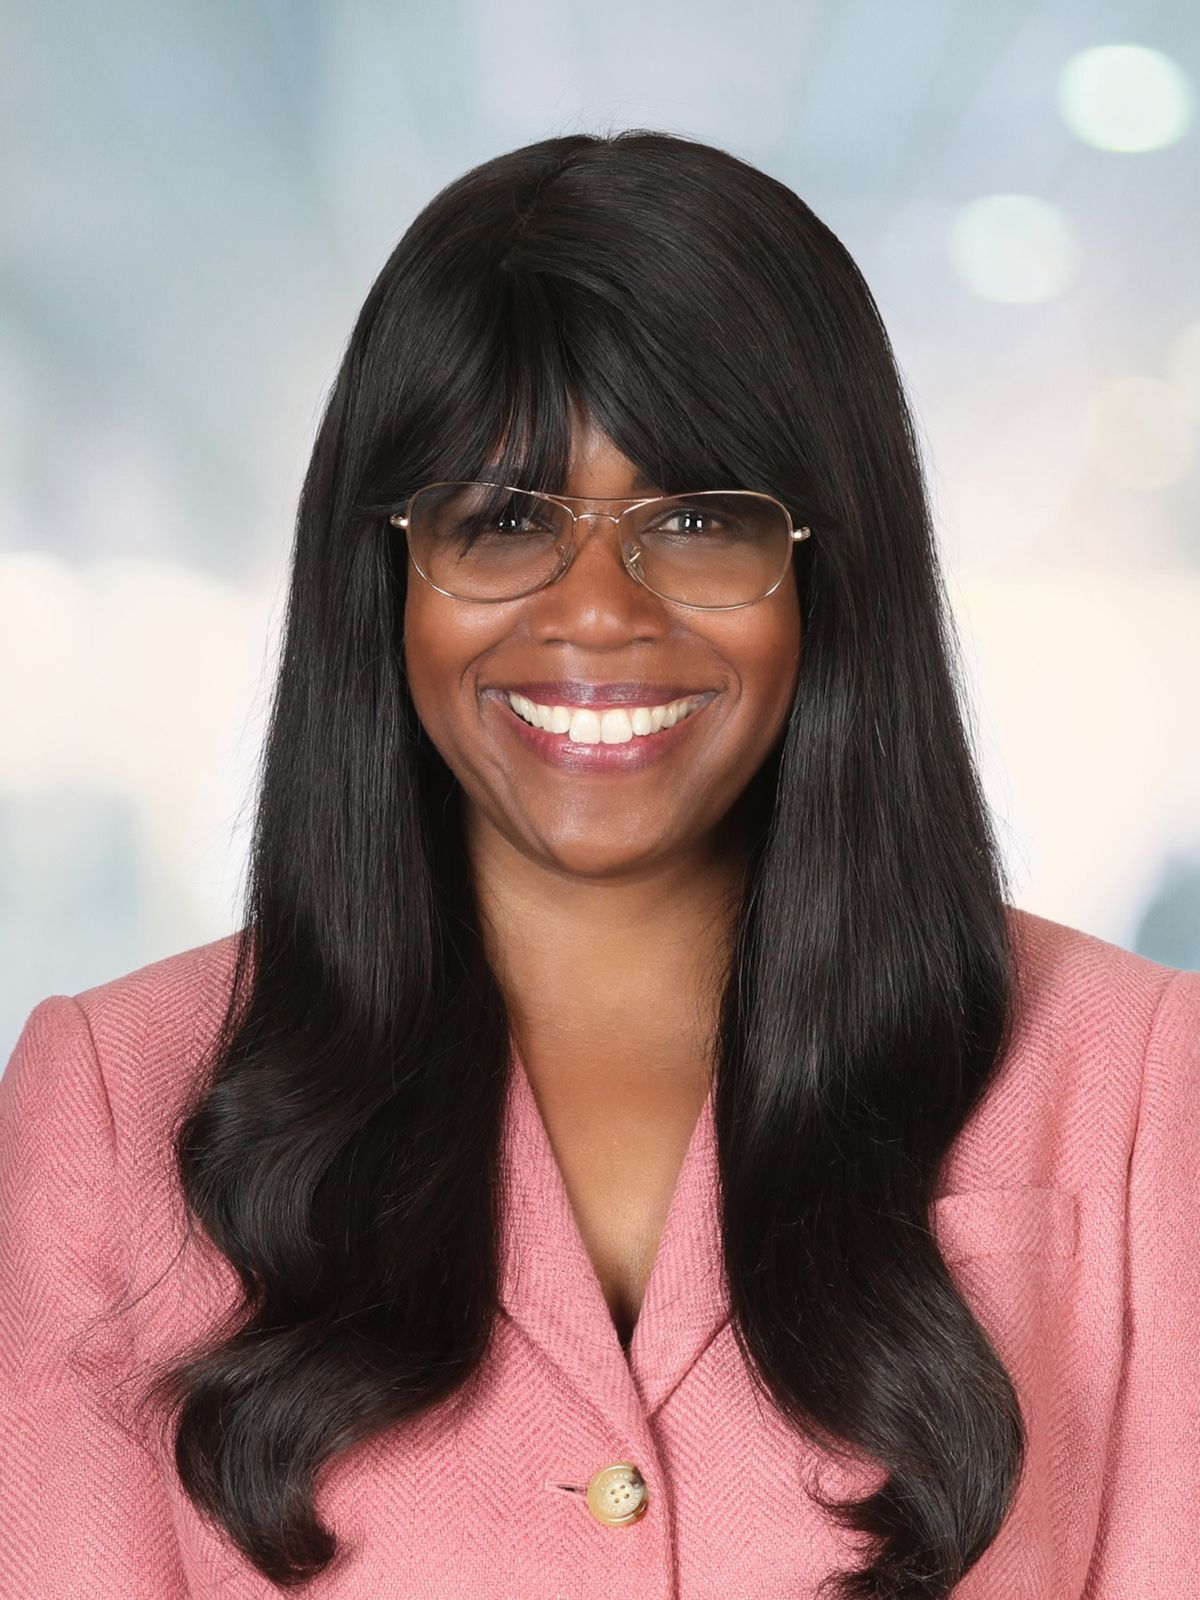 Olabisi Boyle Joins Hyundai Motor America as the Vice President of Product Planning and Mobility Strategy, Hyundai Motor America